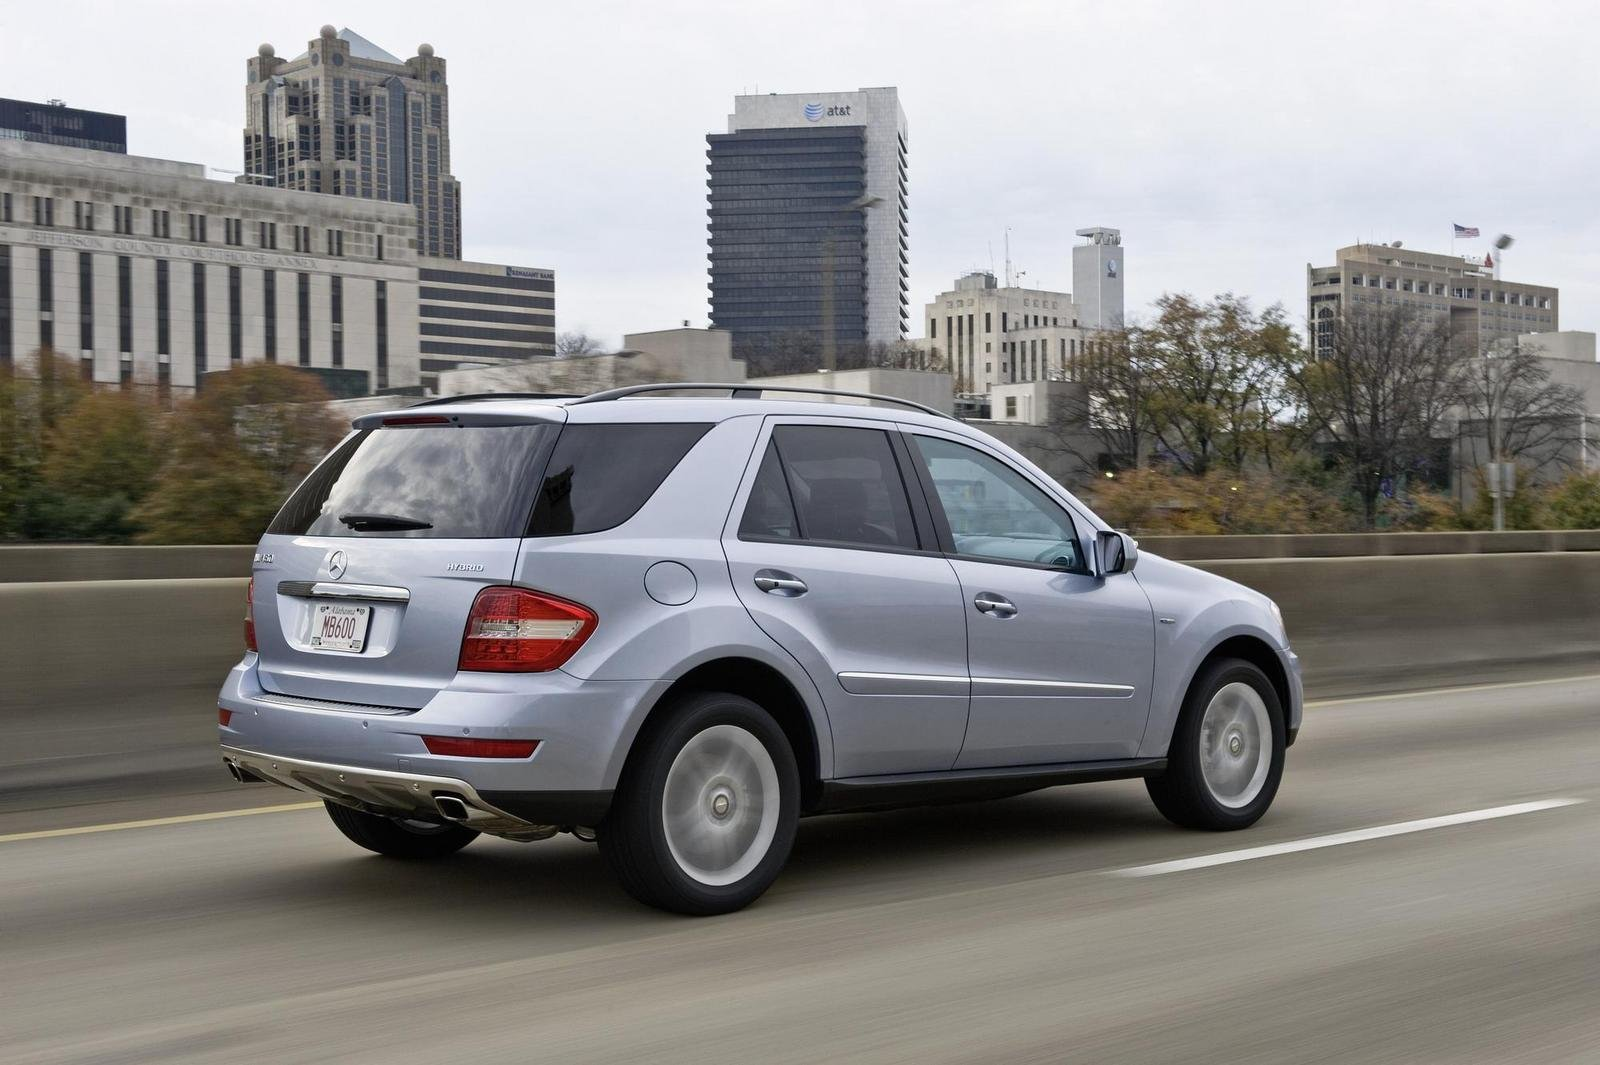 2009 mercedes ml450 hybrid picture 294466 car review for Mercedes benz ml450 hybrid